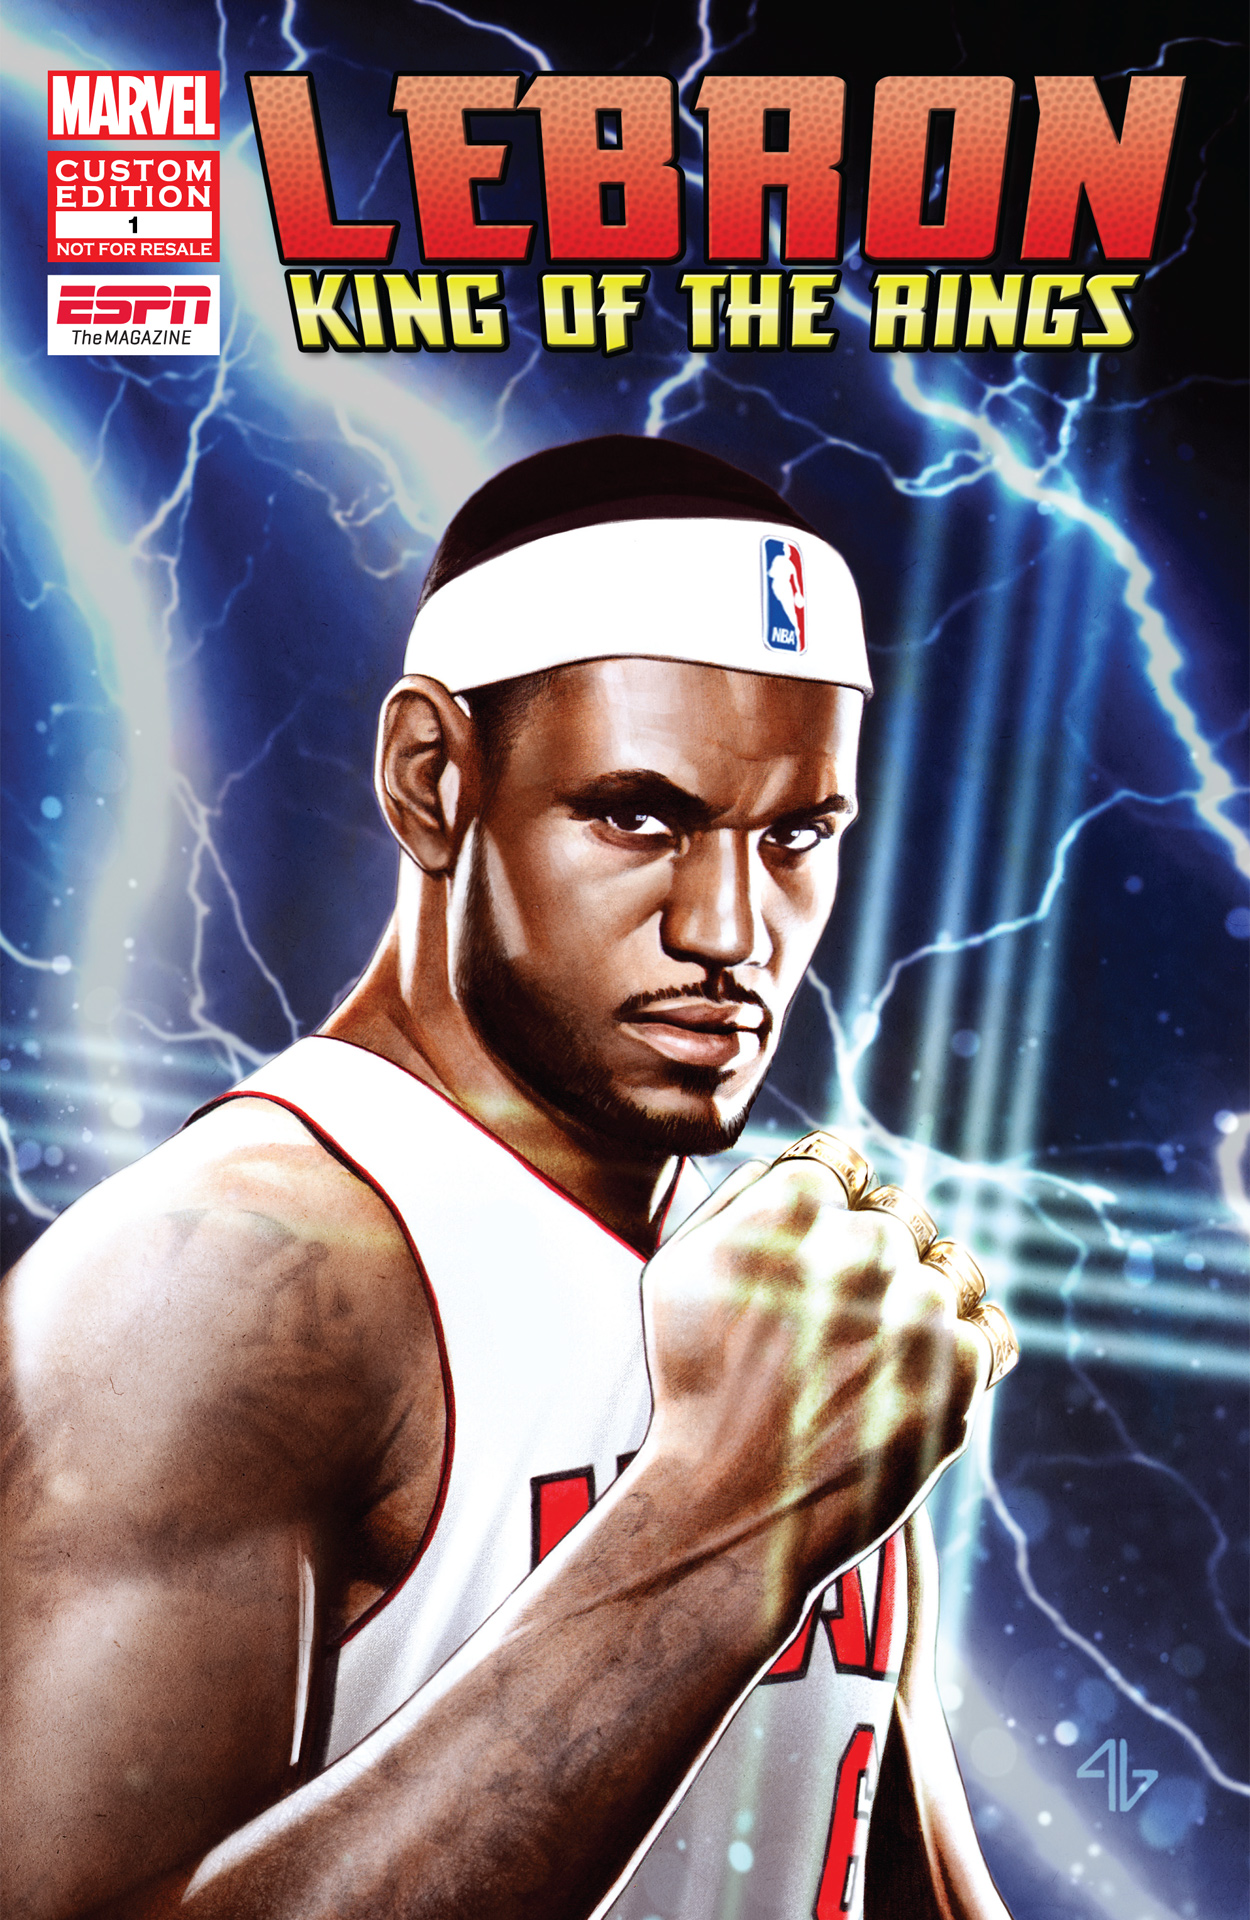 4d66b0ca550 LeBron  King of the Rings - ESPN The Magazine and Marvel present LeBron   King of the Rings - ESPN